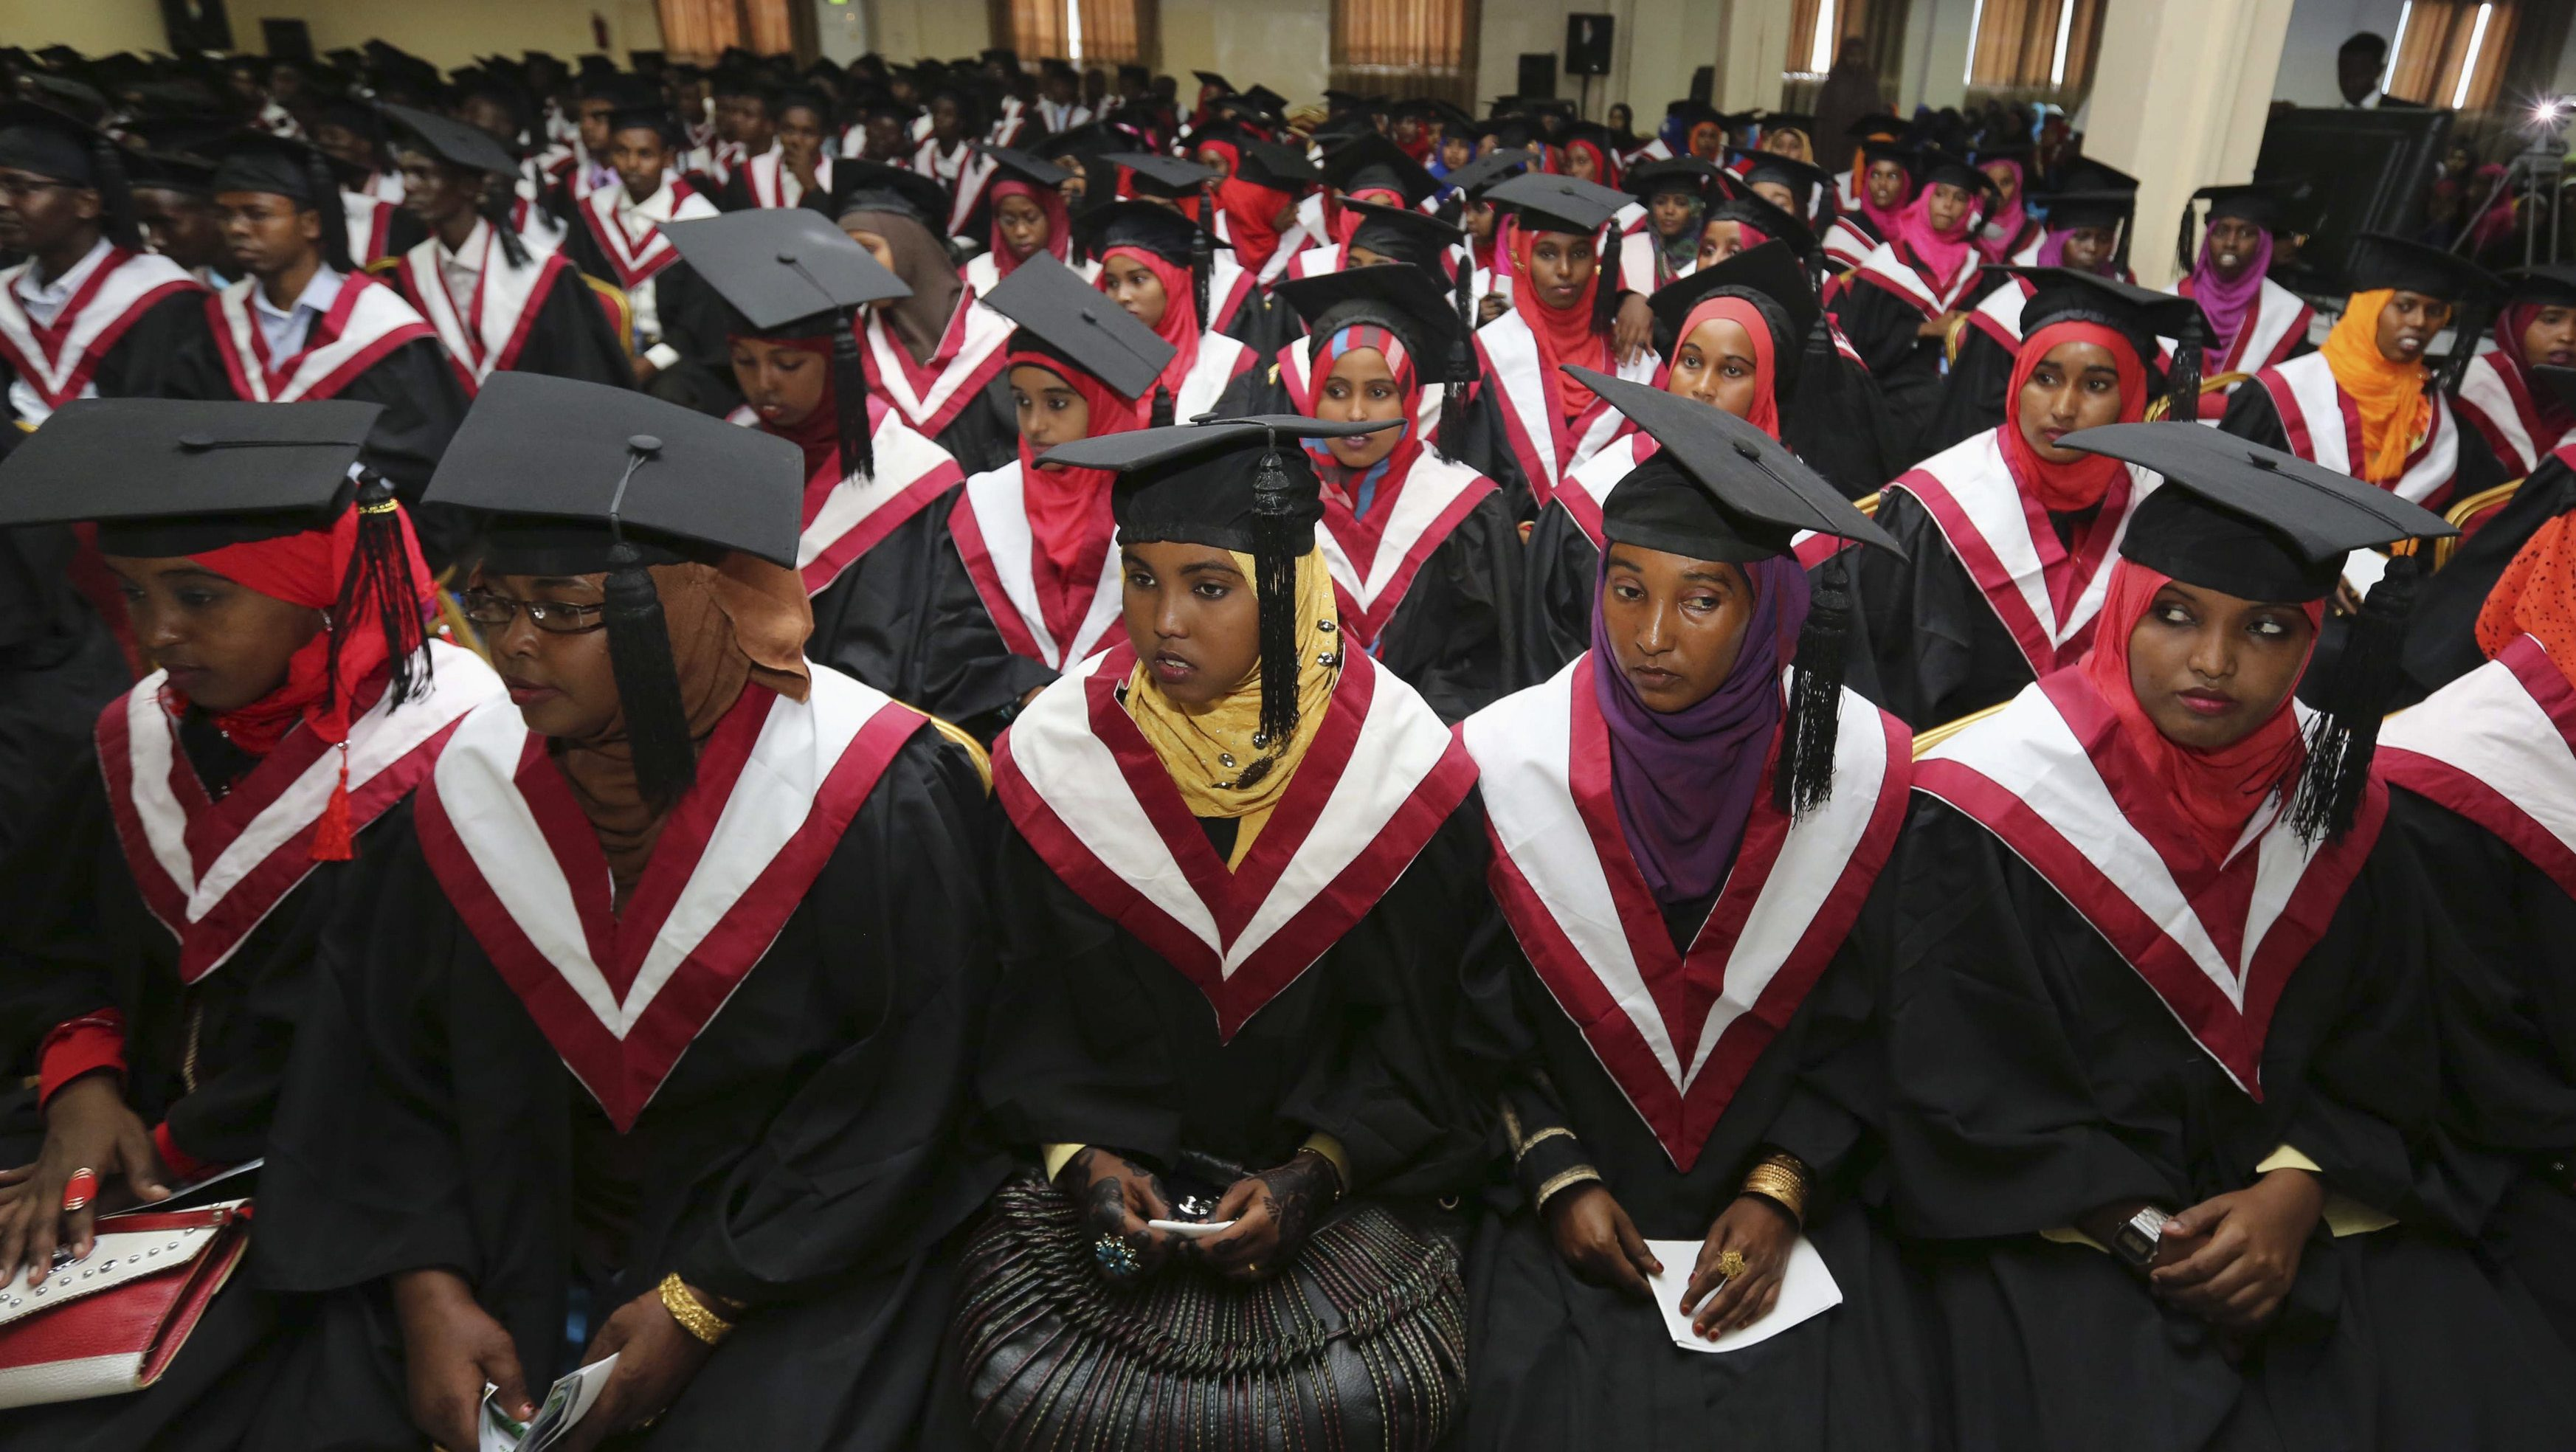 A section of 740 graduating students from Simad University, look on during their graduation ceremony, in the capital Mogadishu, November 28, 2013.